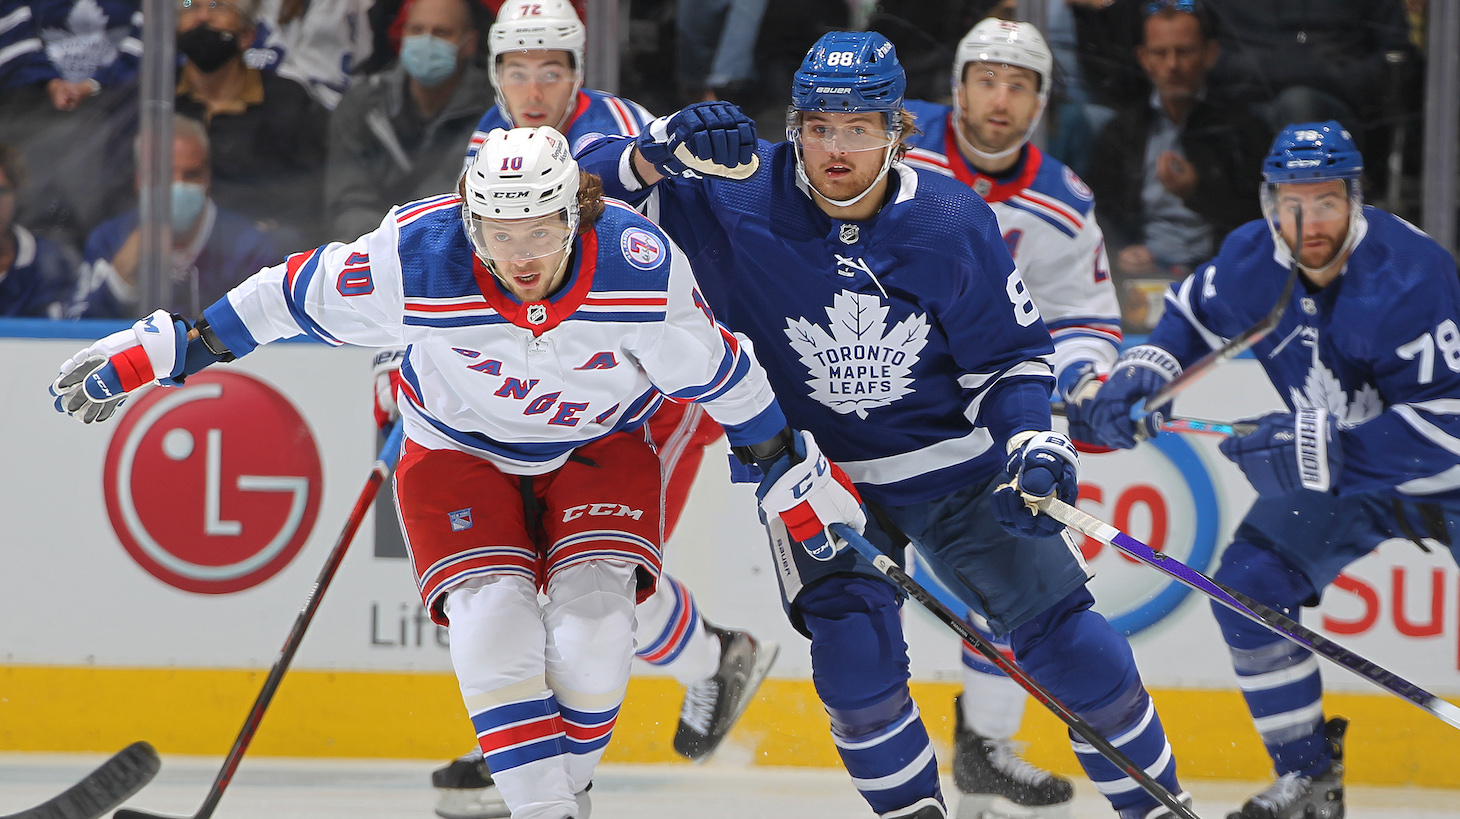 TORONTO, ON - OCTOBER 18: Artemi Panarin #10 of the New York Rangers skates against William Nylander #88 of the Toronto Maple Leafs during an NHL game at Scotiabank Arena on October 18, 2021 in Toronto, Ontario, Canada. (Photo by Claus Andersen/Getty Images) *** Local Caption *** Artemi Panarin; William Nylander